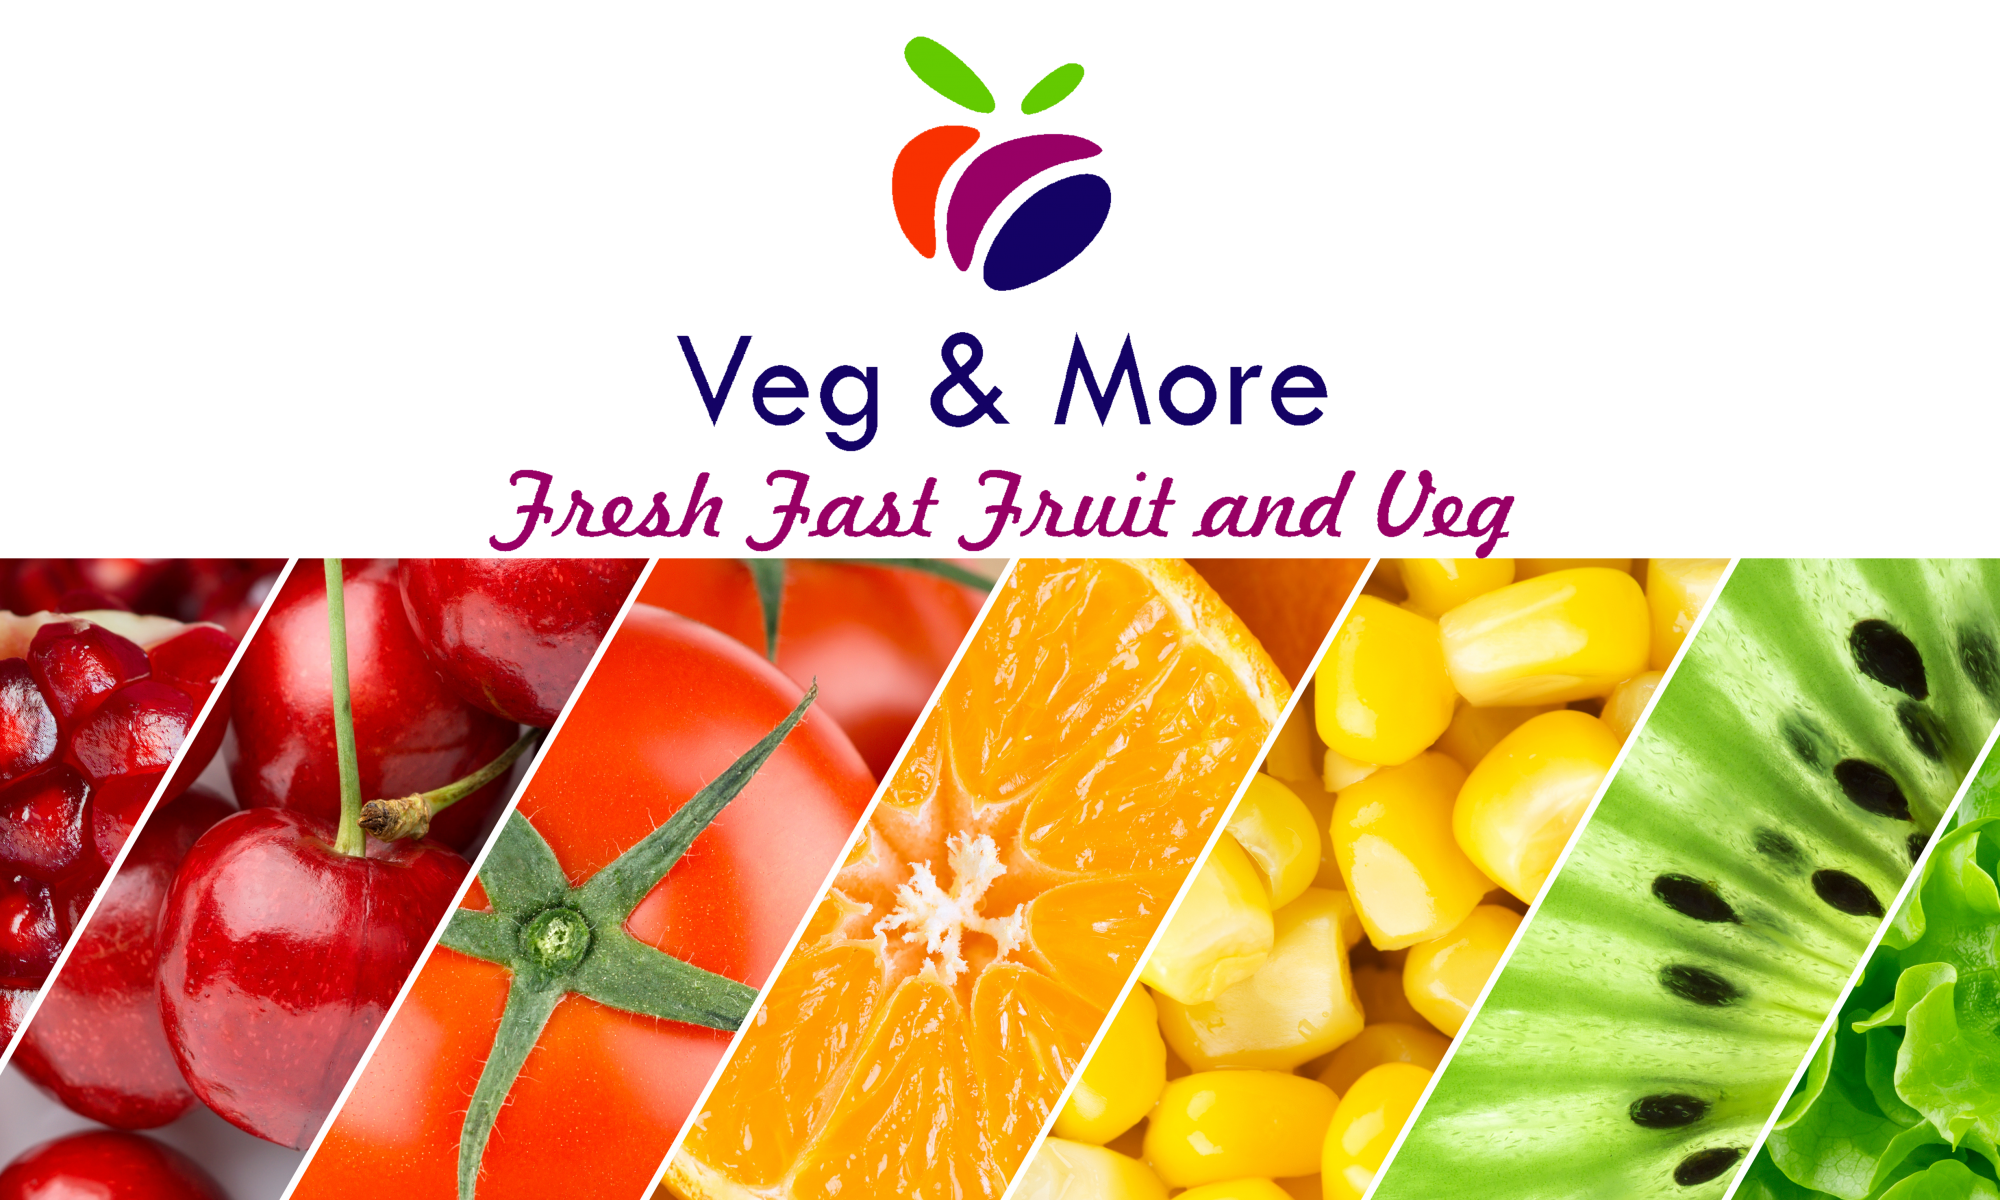 Veg and More Fruit and Veg